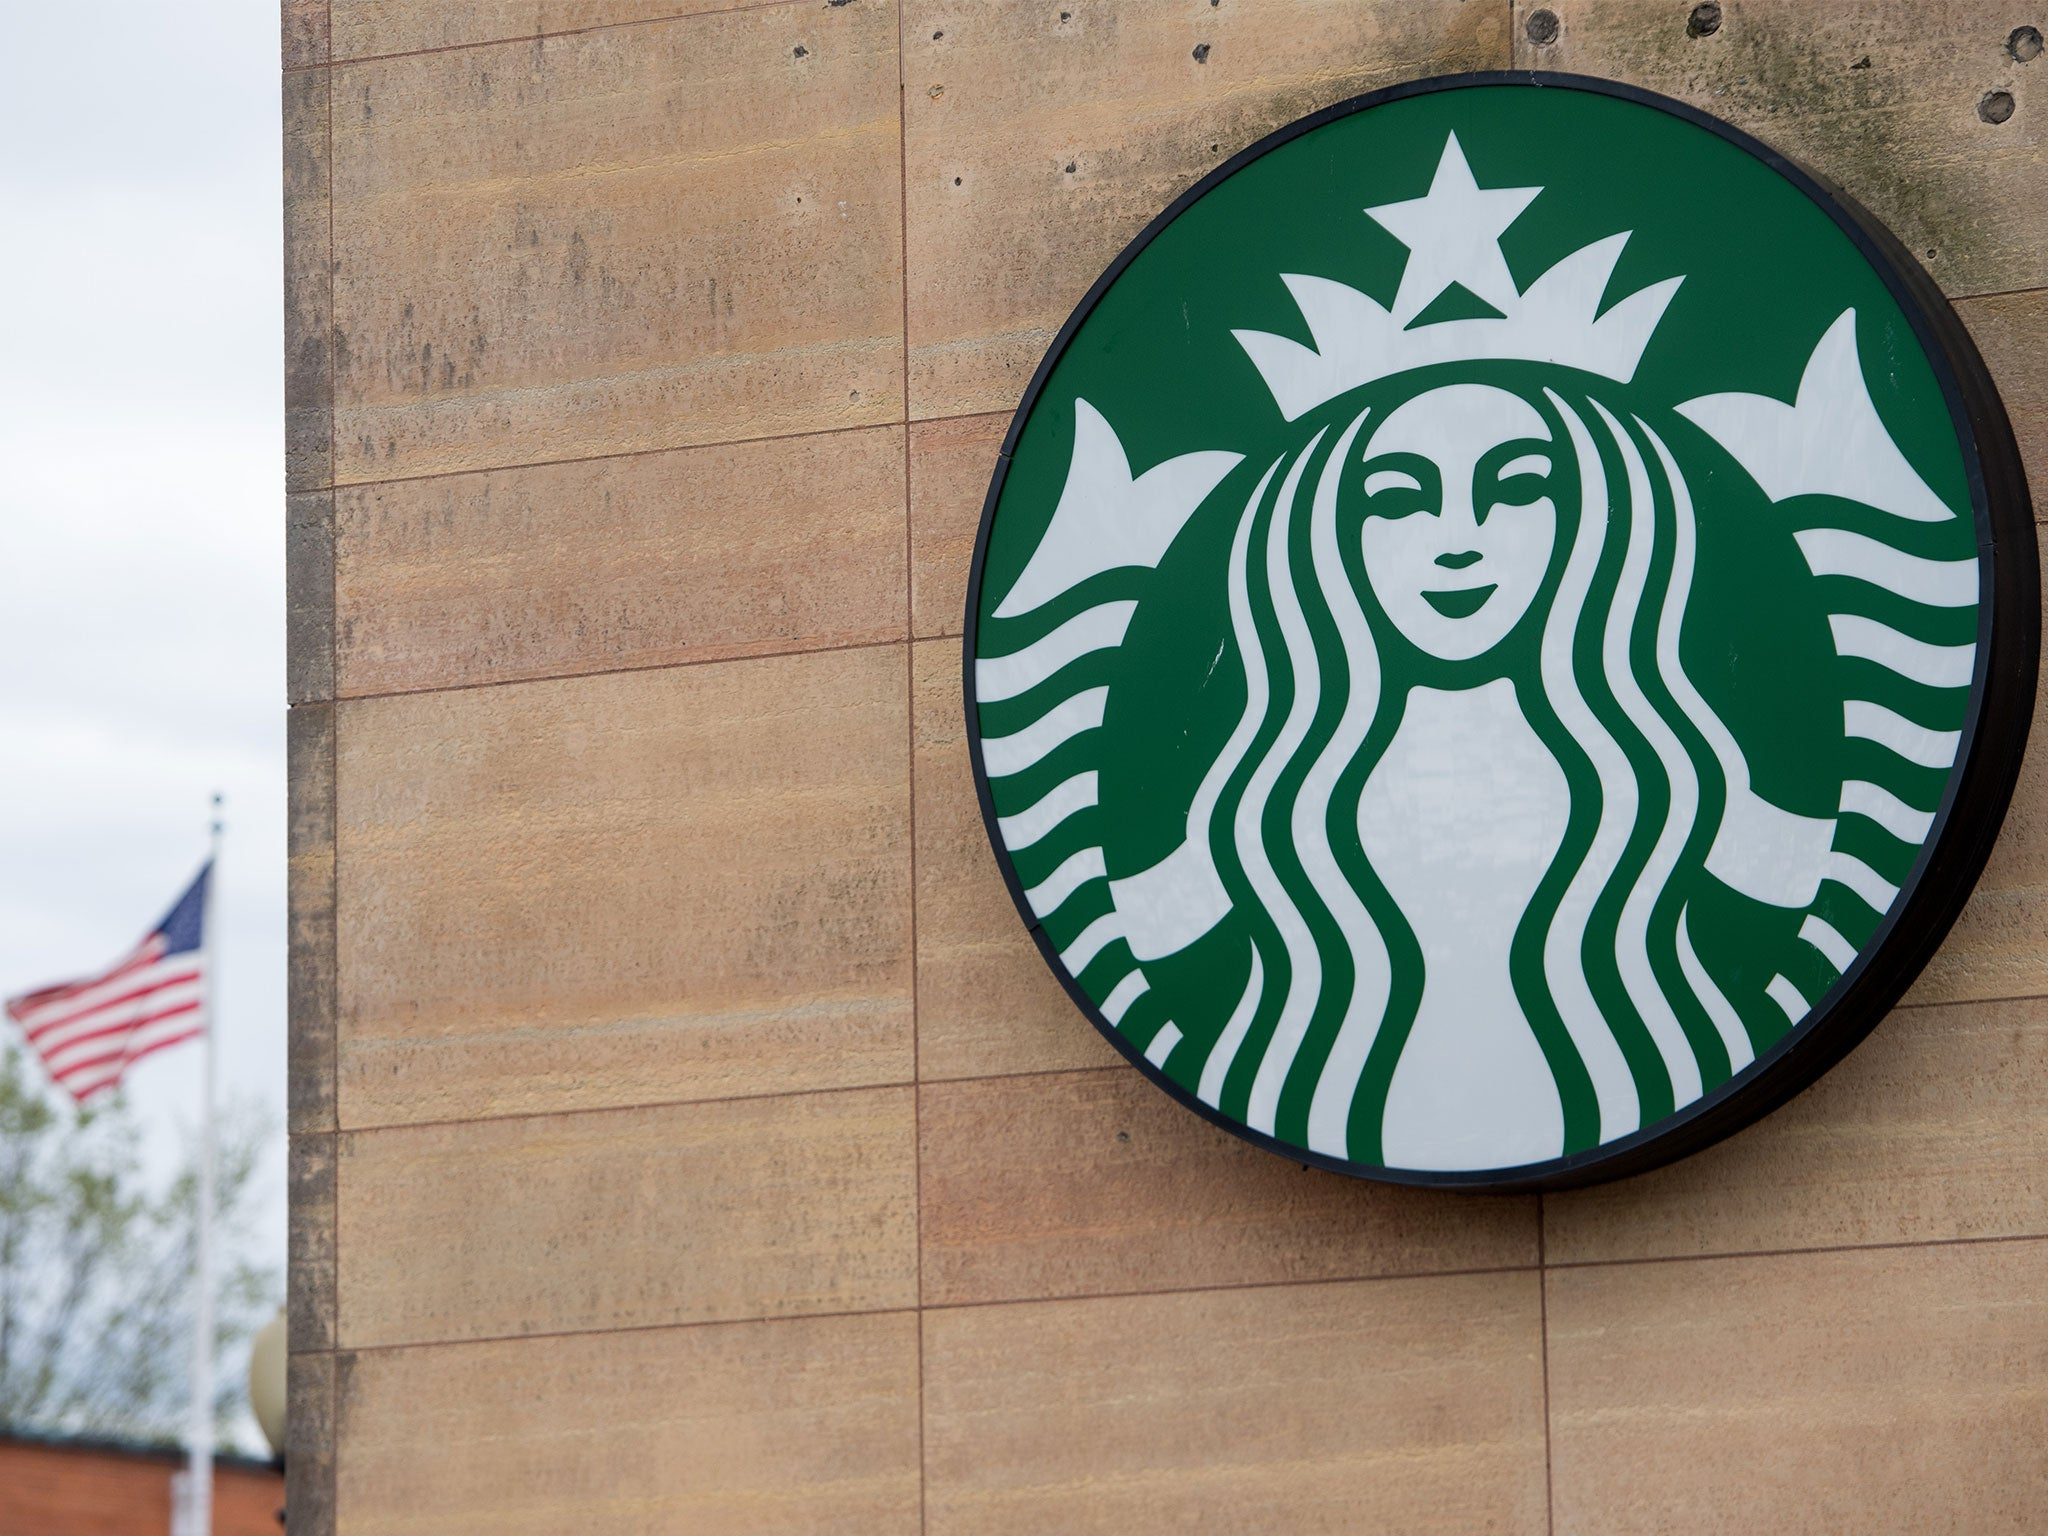 Starbucks closes 8,000 stores to give staff diversity training amid race storm